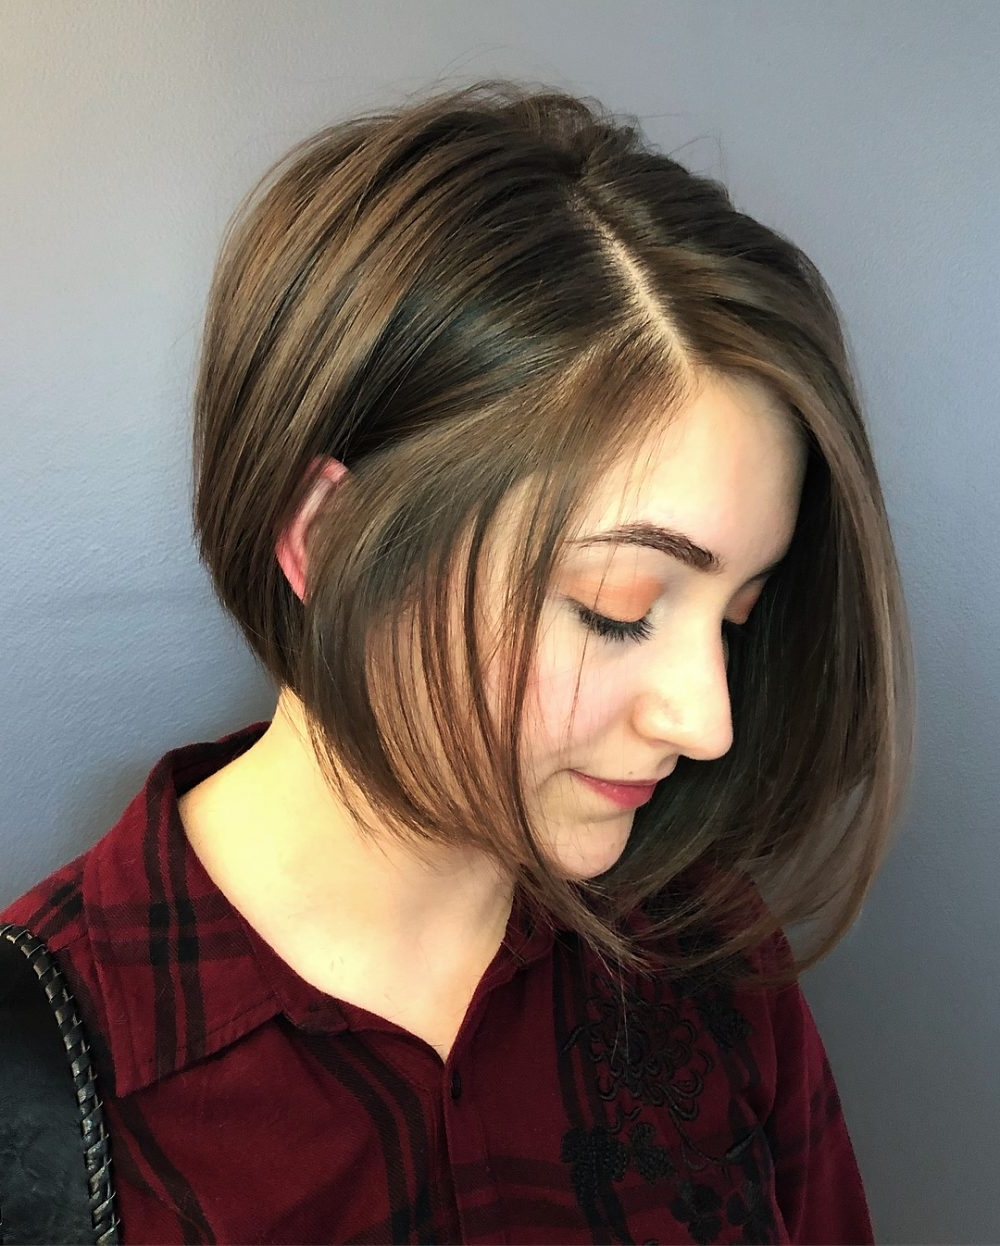 Most Popular Asymmetrical Long Pixie Hairstyles For Round Faces For 33 Flattering Short Hairstyles For Round Faces In  (View 12 of 20)